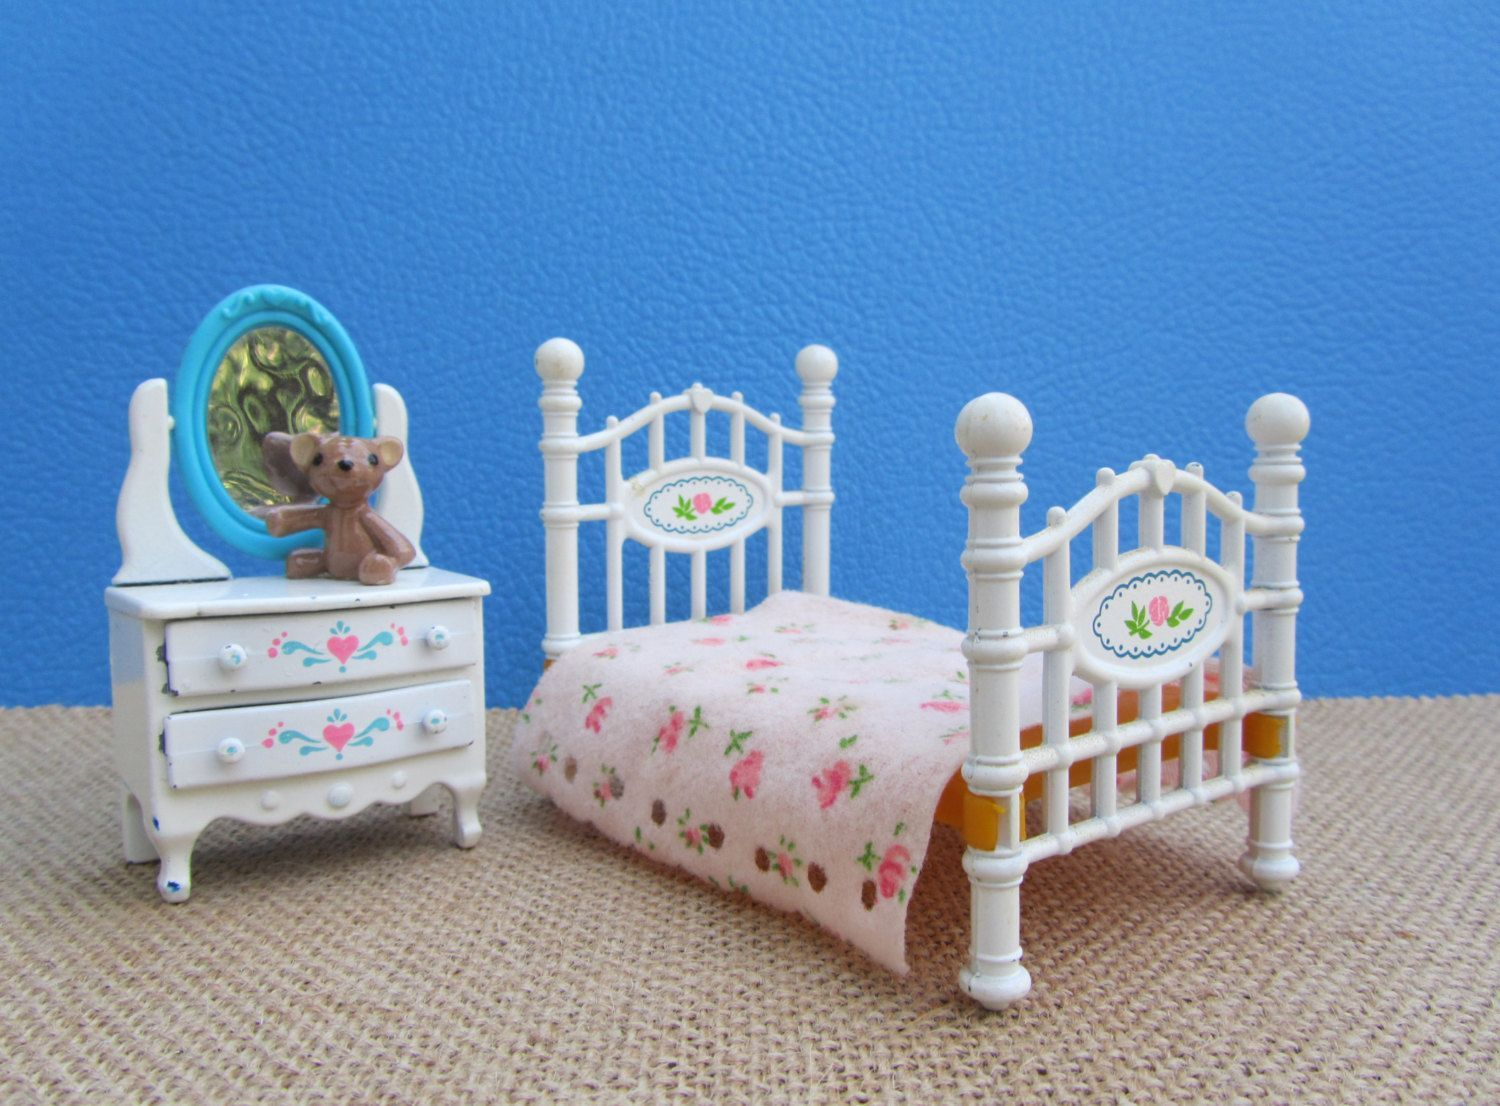 Doll Bed & Dresser Dollhouse Furniture Toy Cast Iron The Littles Vintage 80s Mattel White Brass Bed and Chest of Drawers Tilting Mirror #bearbedpillowdolls Doll Bed & Dresser Dollhouse Furniture Toy Cast Iron The Littles Vintage 80s Mattel White Brass Bed and Chest of Drawers Tilting Mirror by WillowValleyVintage on Etsy #bearbedpillowdolls